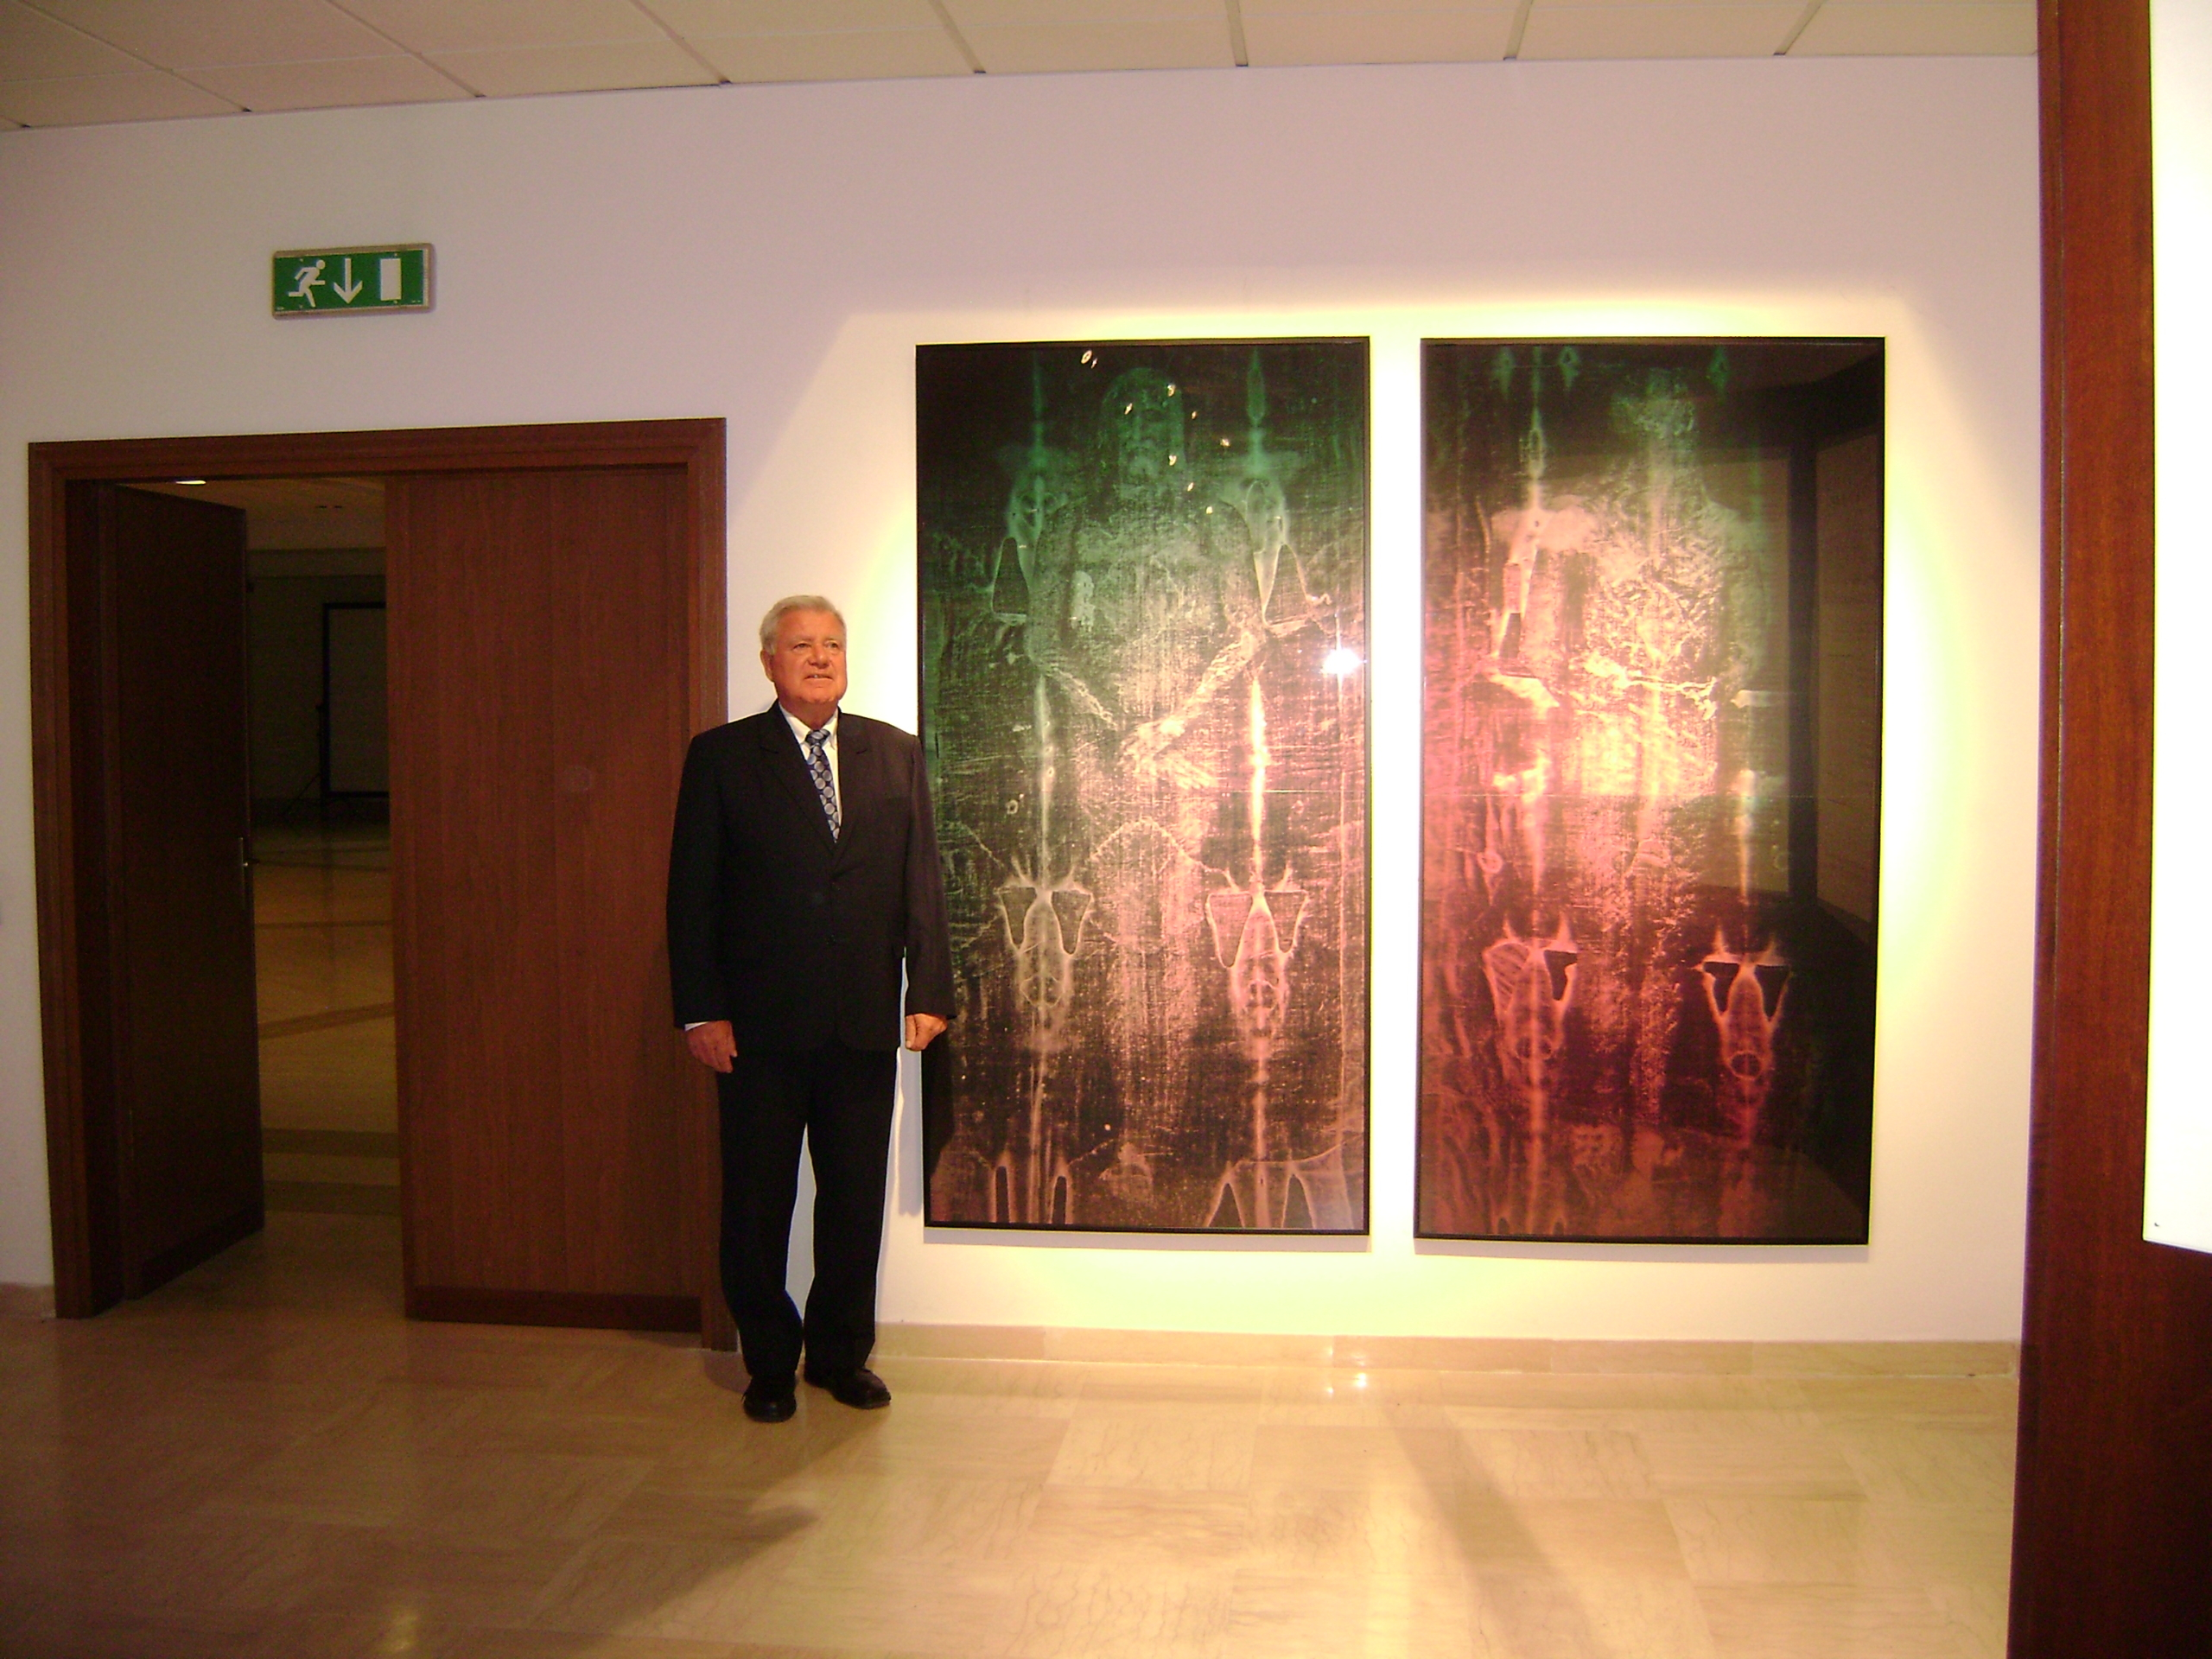 Dr. Petrus Soons with holograms of the front and back of the body